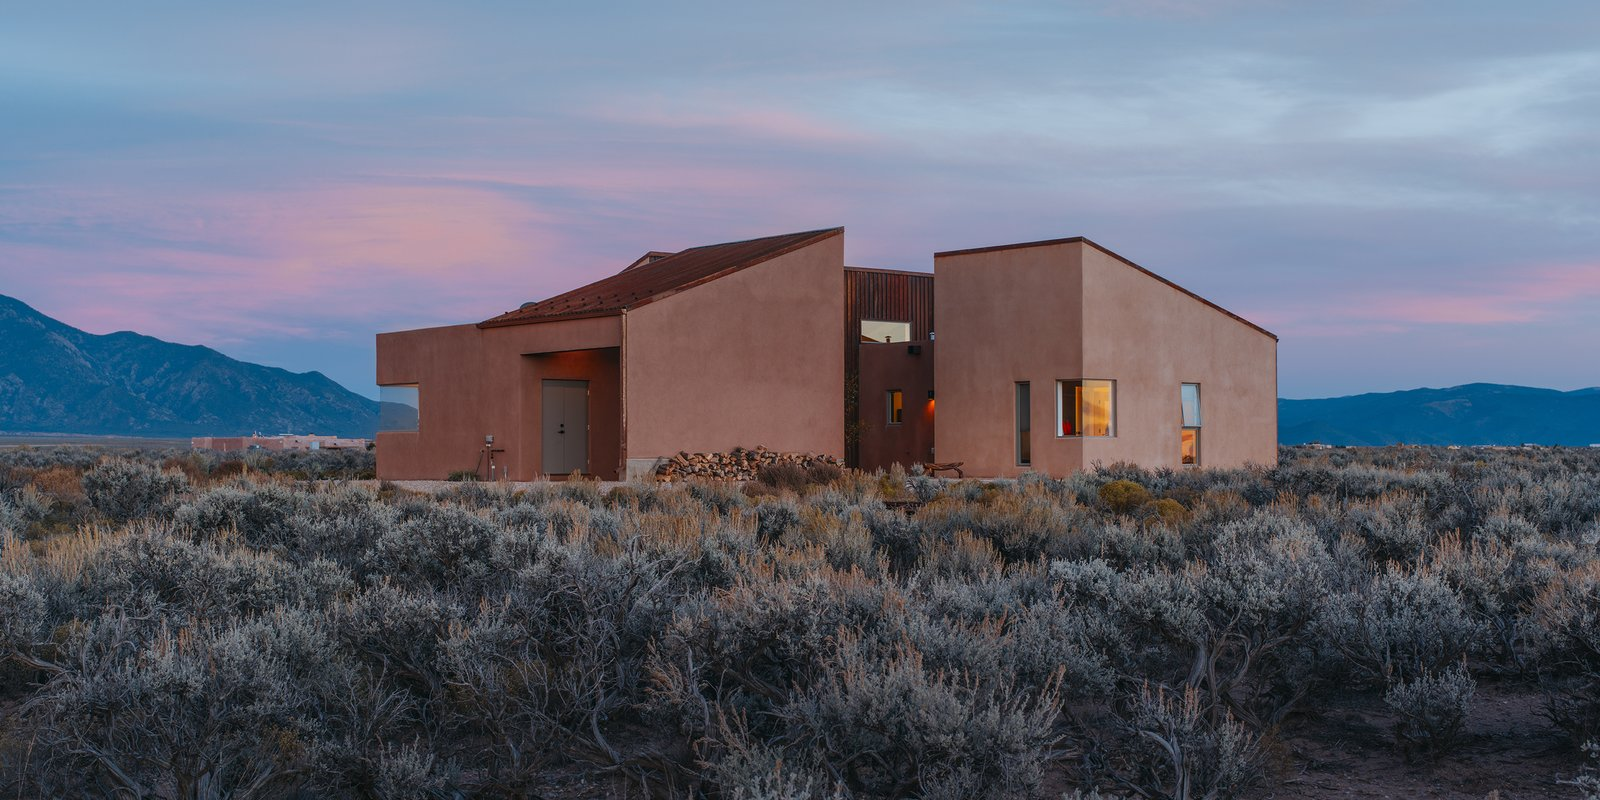 Outdoor, Shrubs, and Desert - Taos, New Mexico Dwell Magazine : July / August 2017  Outdoor Desert Photos from A Rookie Designer and Her Builder Father Create an Artist's Sculptural Loft in the Desert